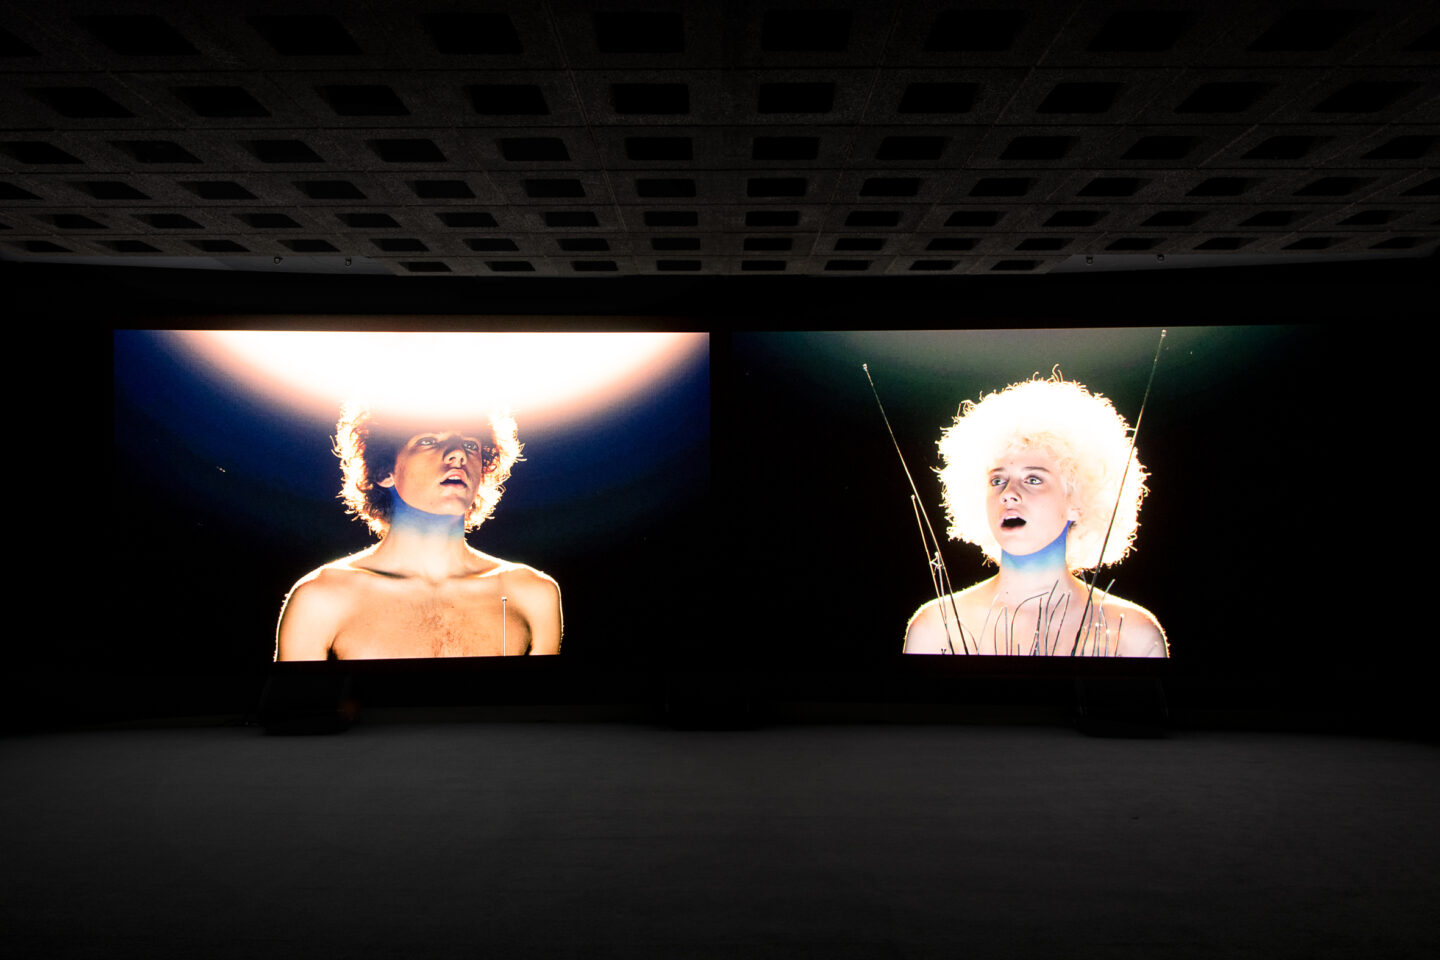 Exhibition View Groupshow «Metamorphosis Overdrive; view on Rä di Martino, Afterall, 2019 (video still)» at Kunstmuseum St. Gallen, St. Gallen, 2020 / Photo: Sebastian Stadler / Courtesy: the artist and Kunstmuseum St. Gallen